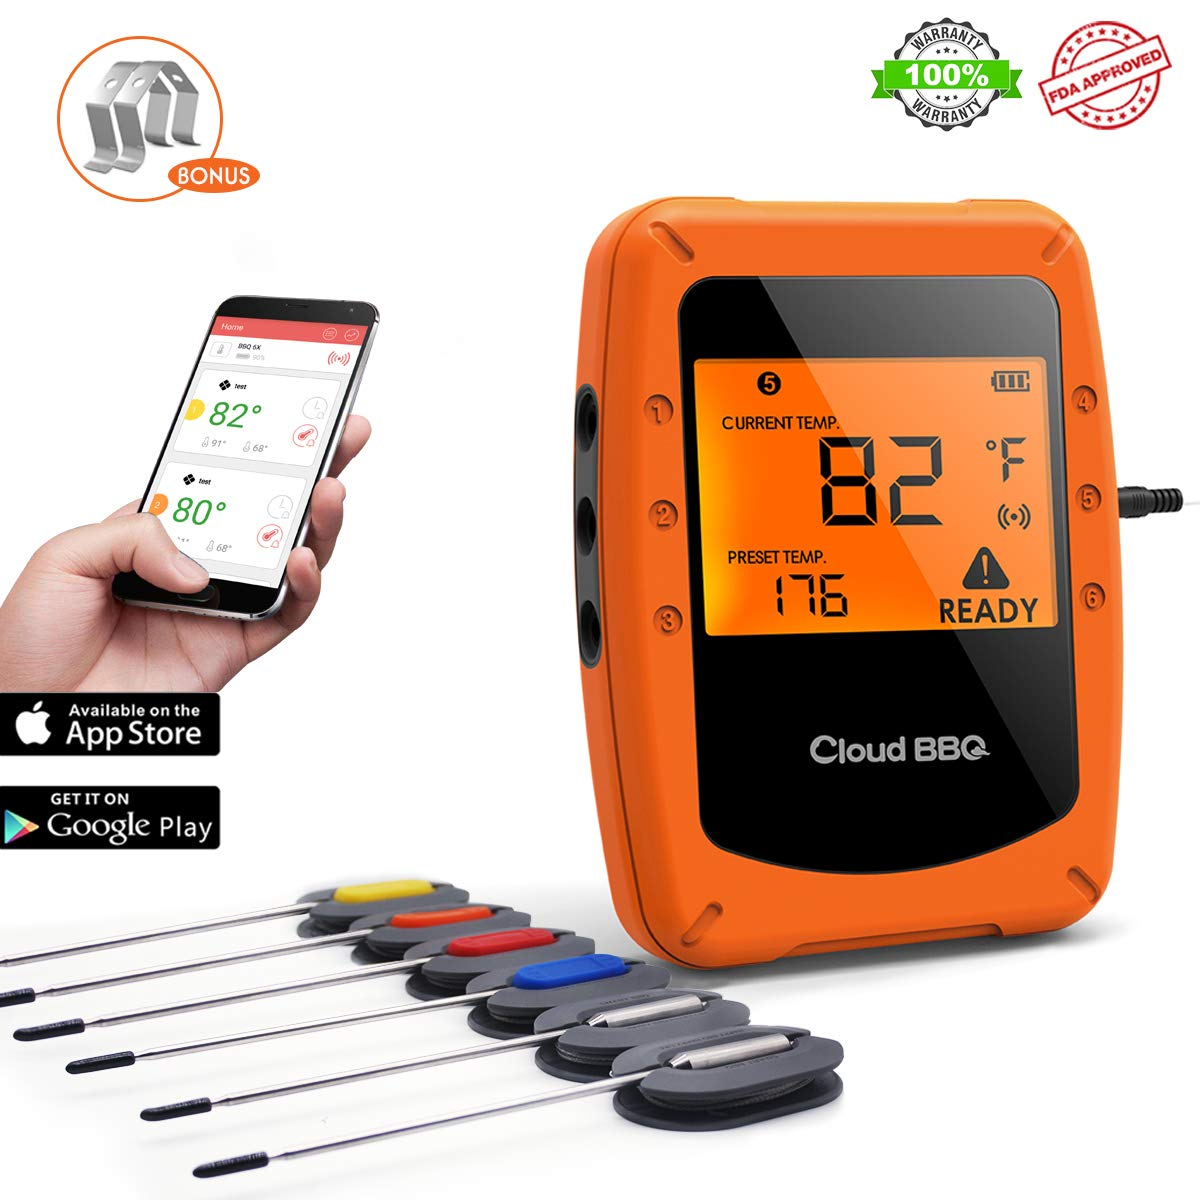 BINLAN BBQ Thermometer Bluetooth Wireless Digital Meat Food Thermometer Remote with 6 Probes for Smoker Grill, Oven, Instant Read on Phone App Supporting iOS & Android - Guaranteed